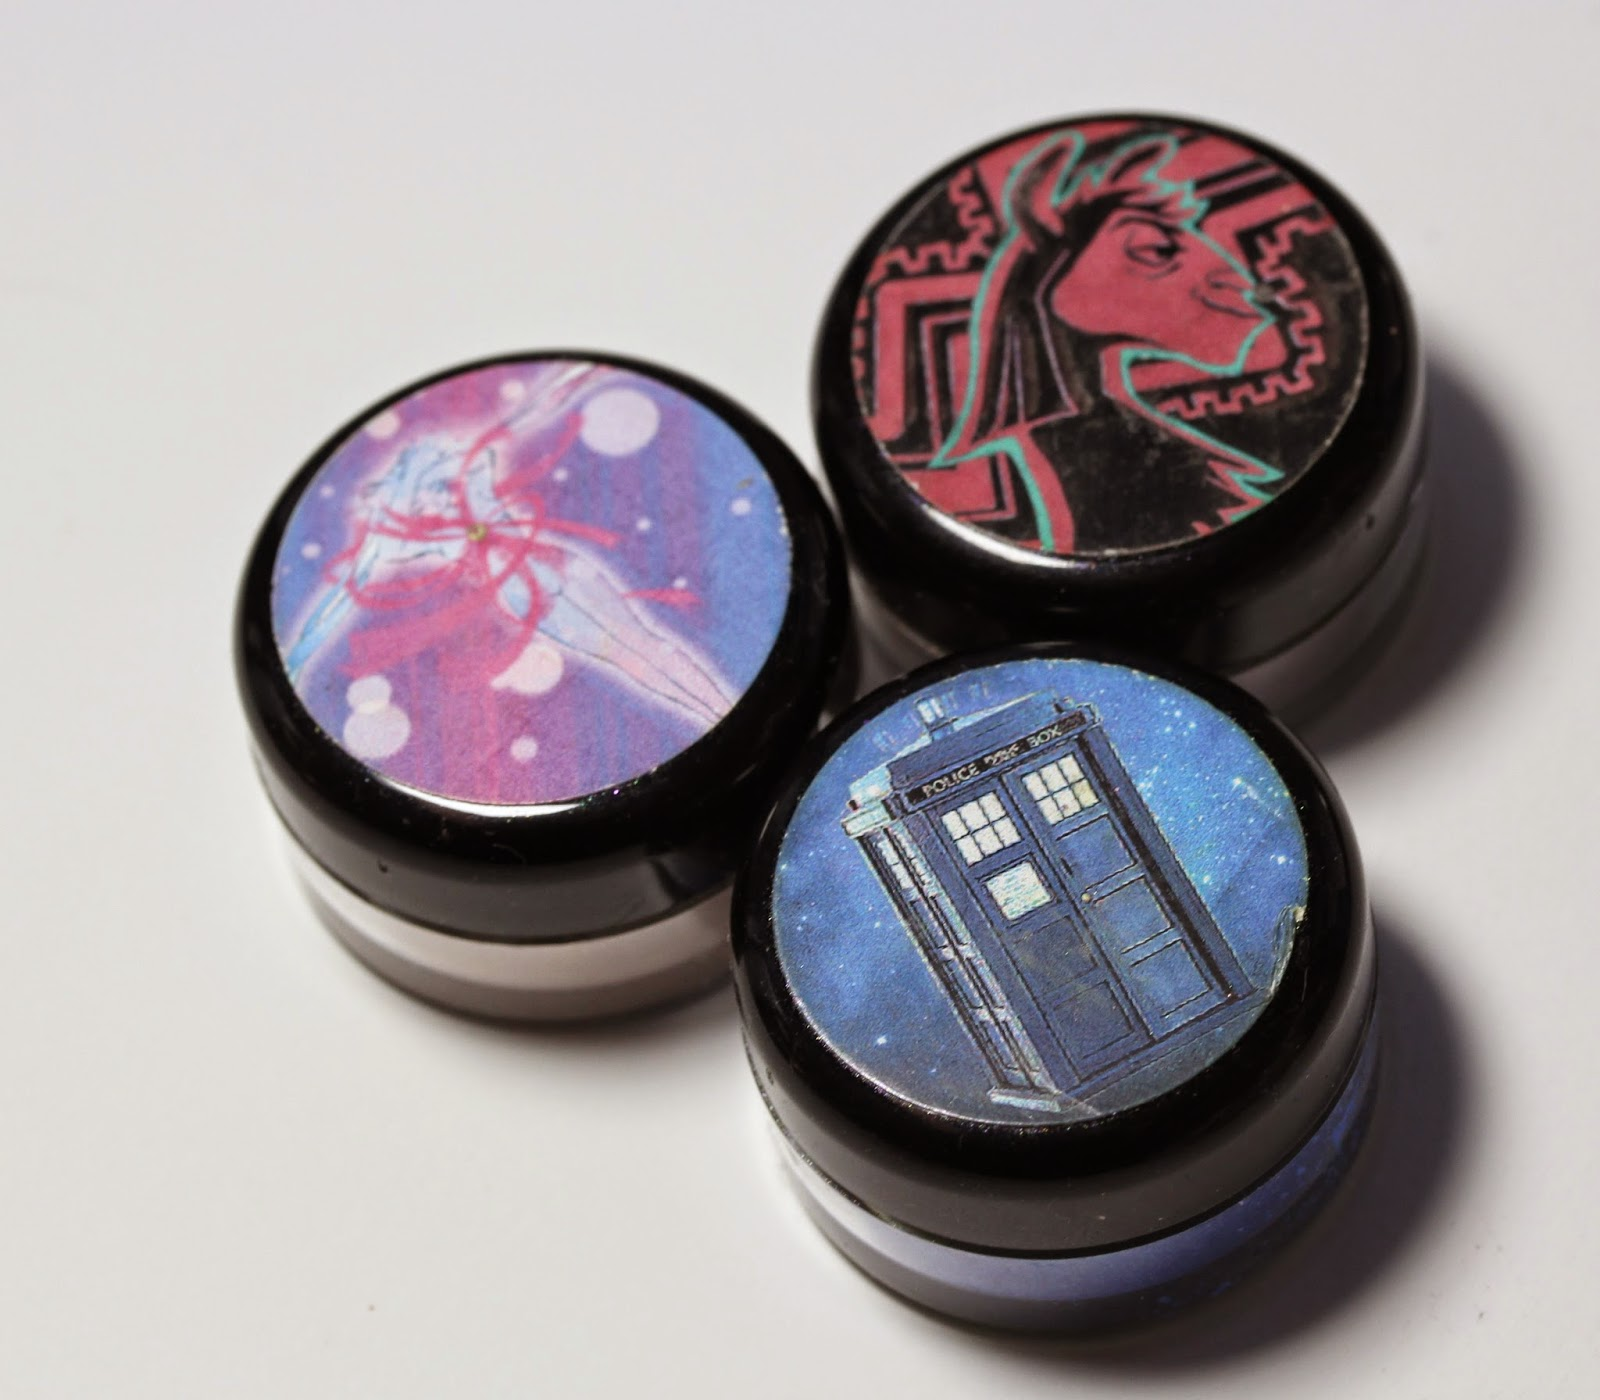 Shiro: Moon Prism Powder, Yzma's Essence of Llama, Tardis